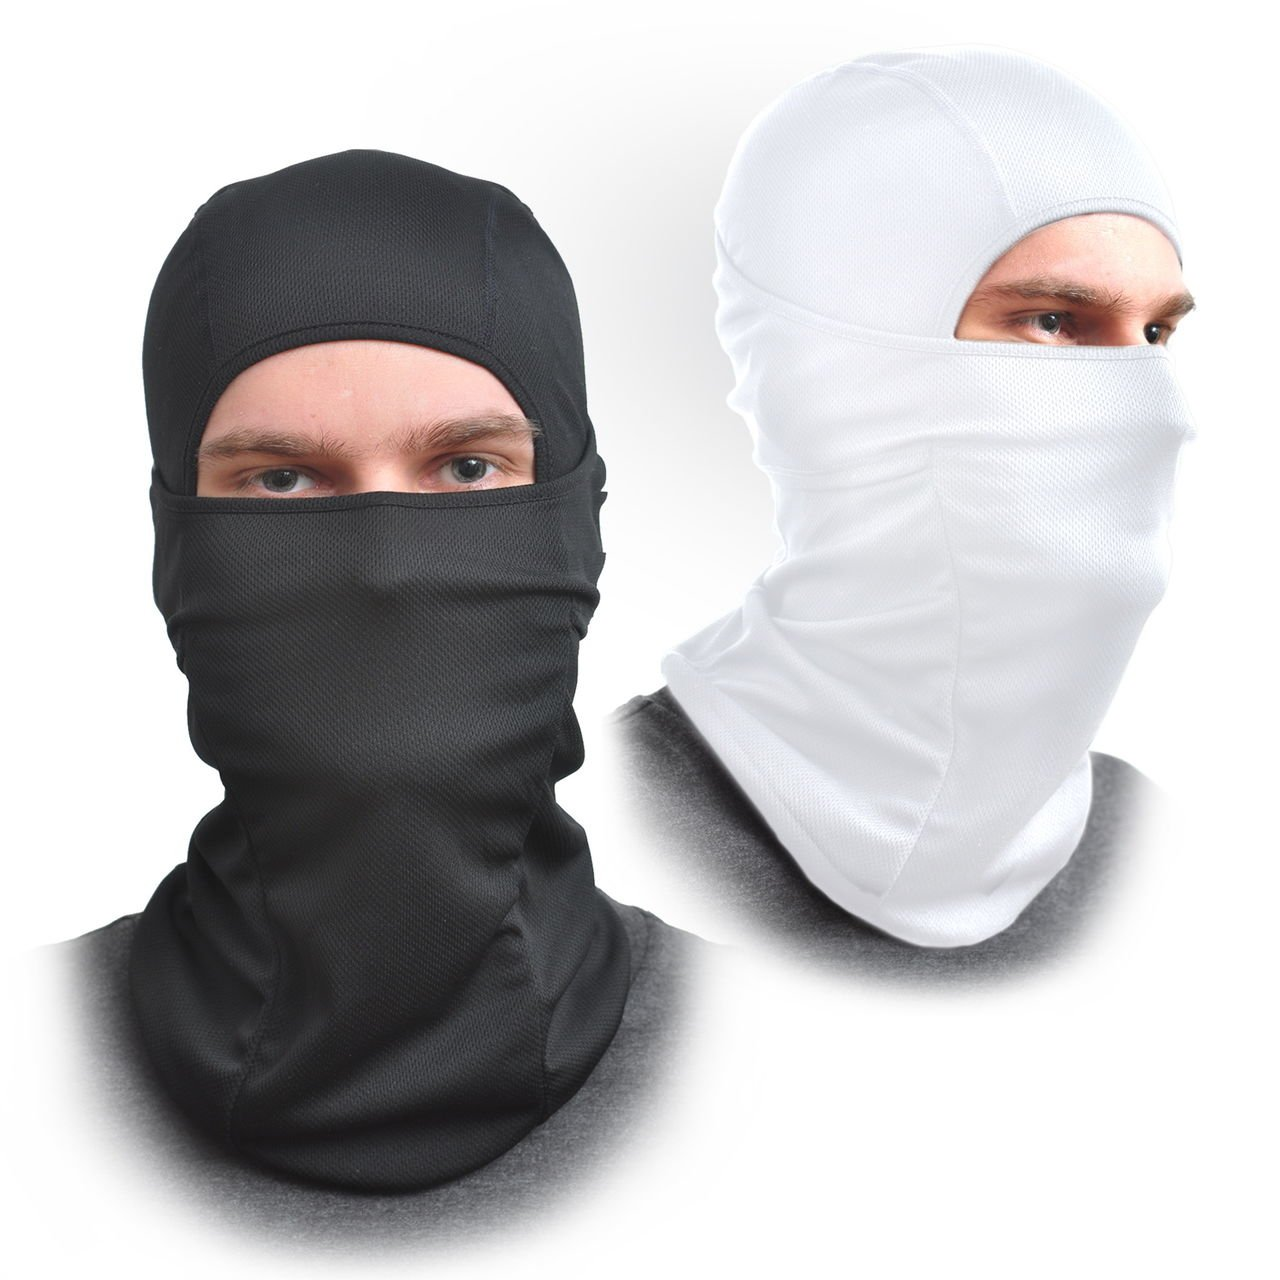 Approved for Automotive Balaclava Face Mask [2-pack] One Size Fits All